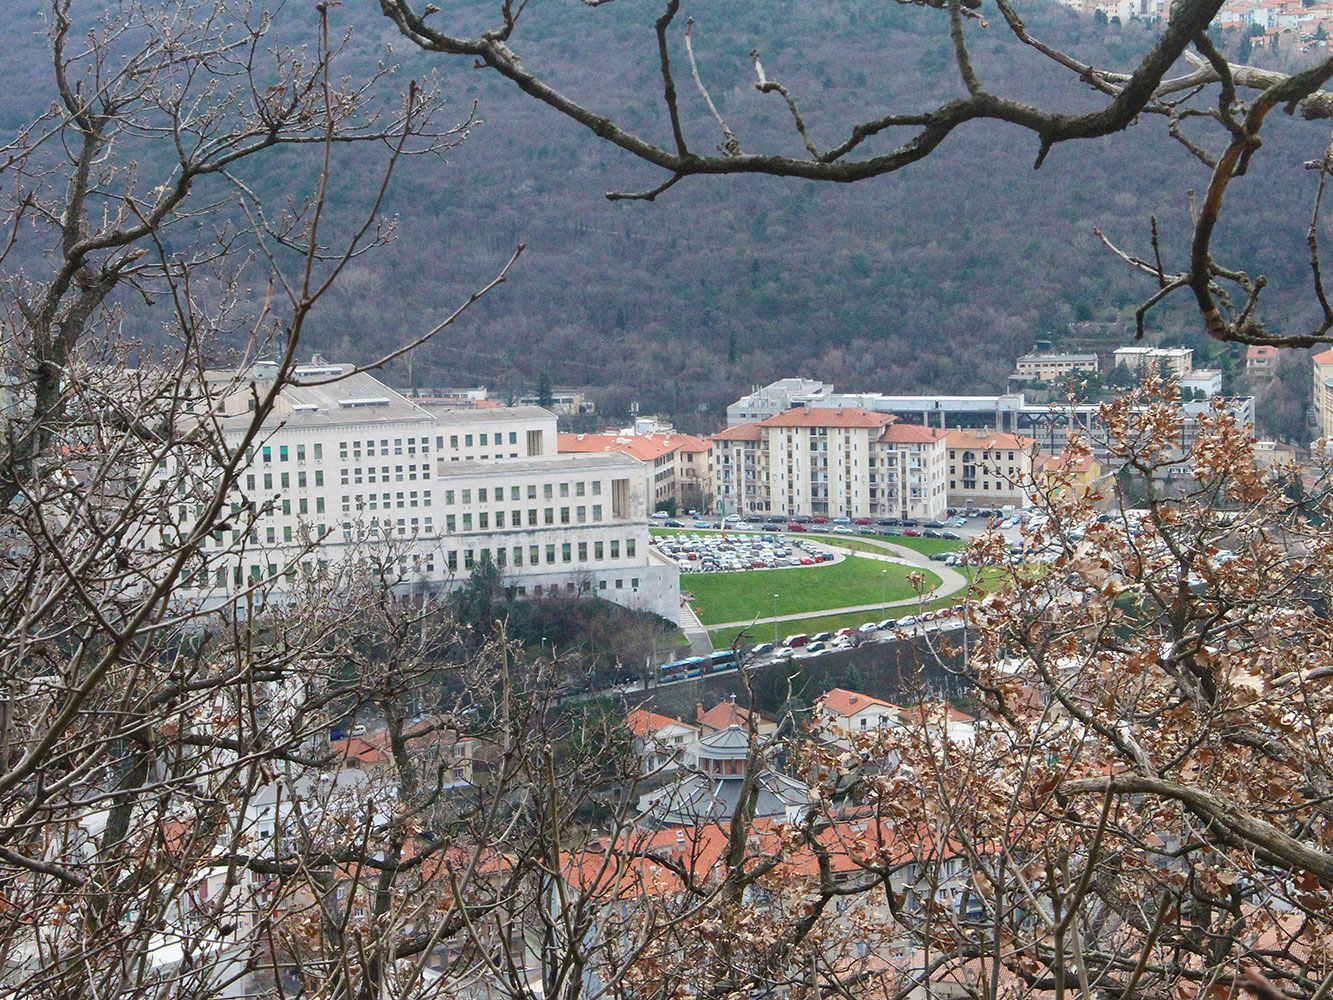 Università di Trieste - vista laterale